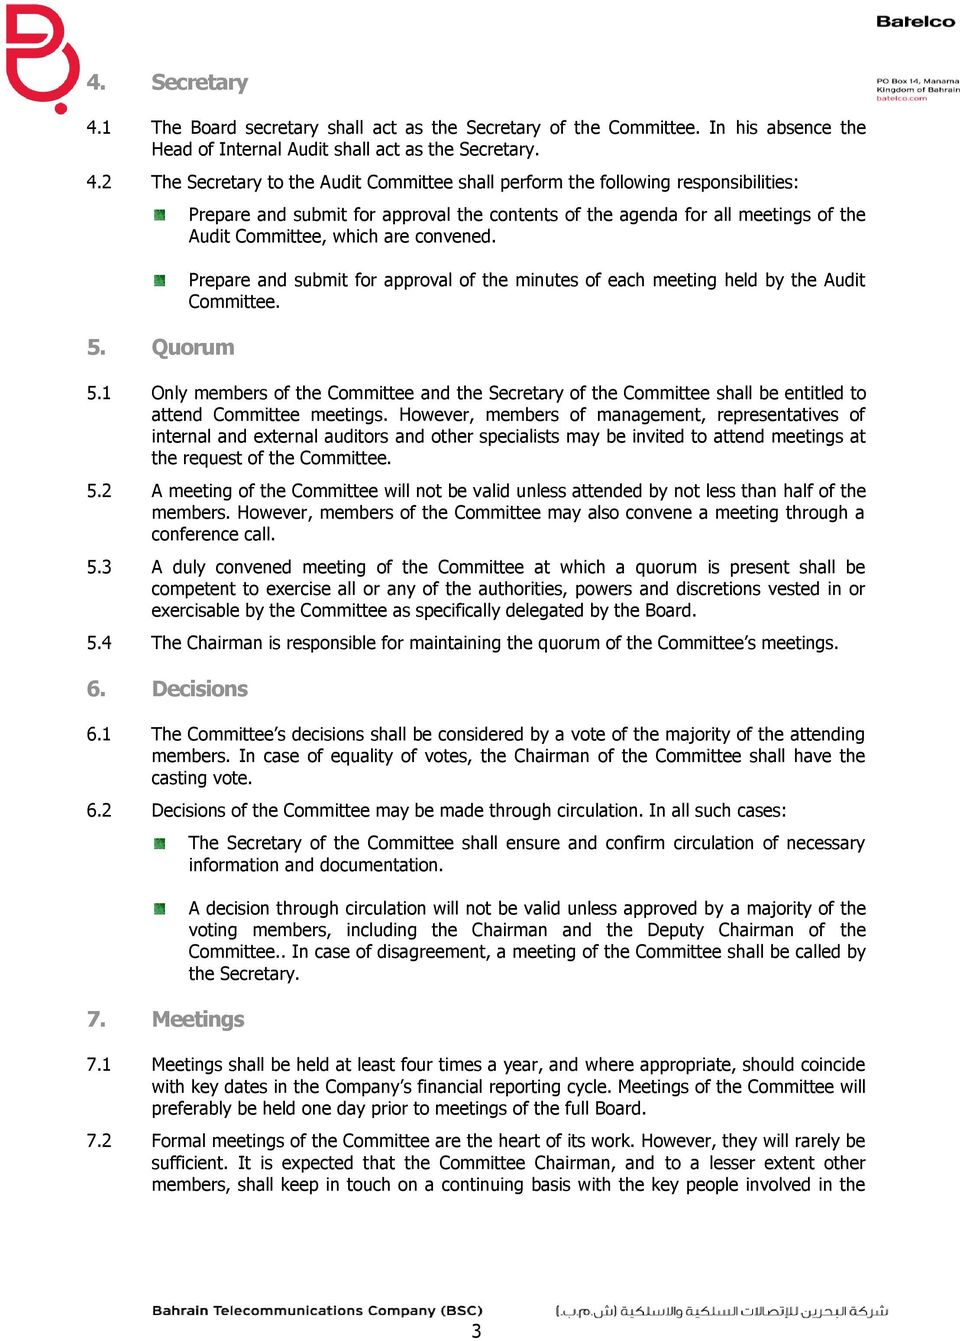 Prepare and submit for approval of the minutes of each meeting held by the Audit Committee. 5.